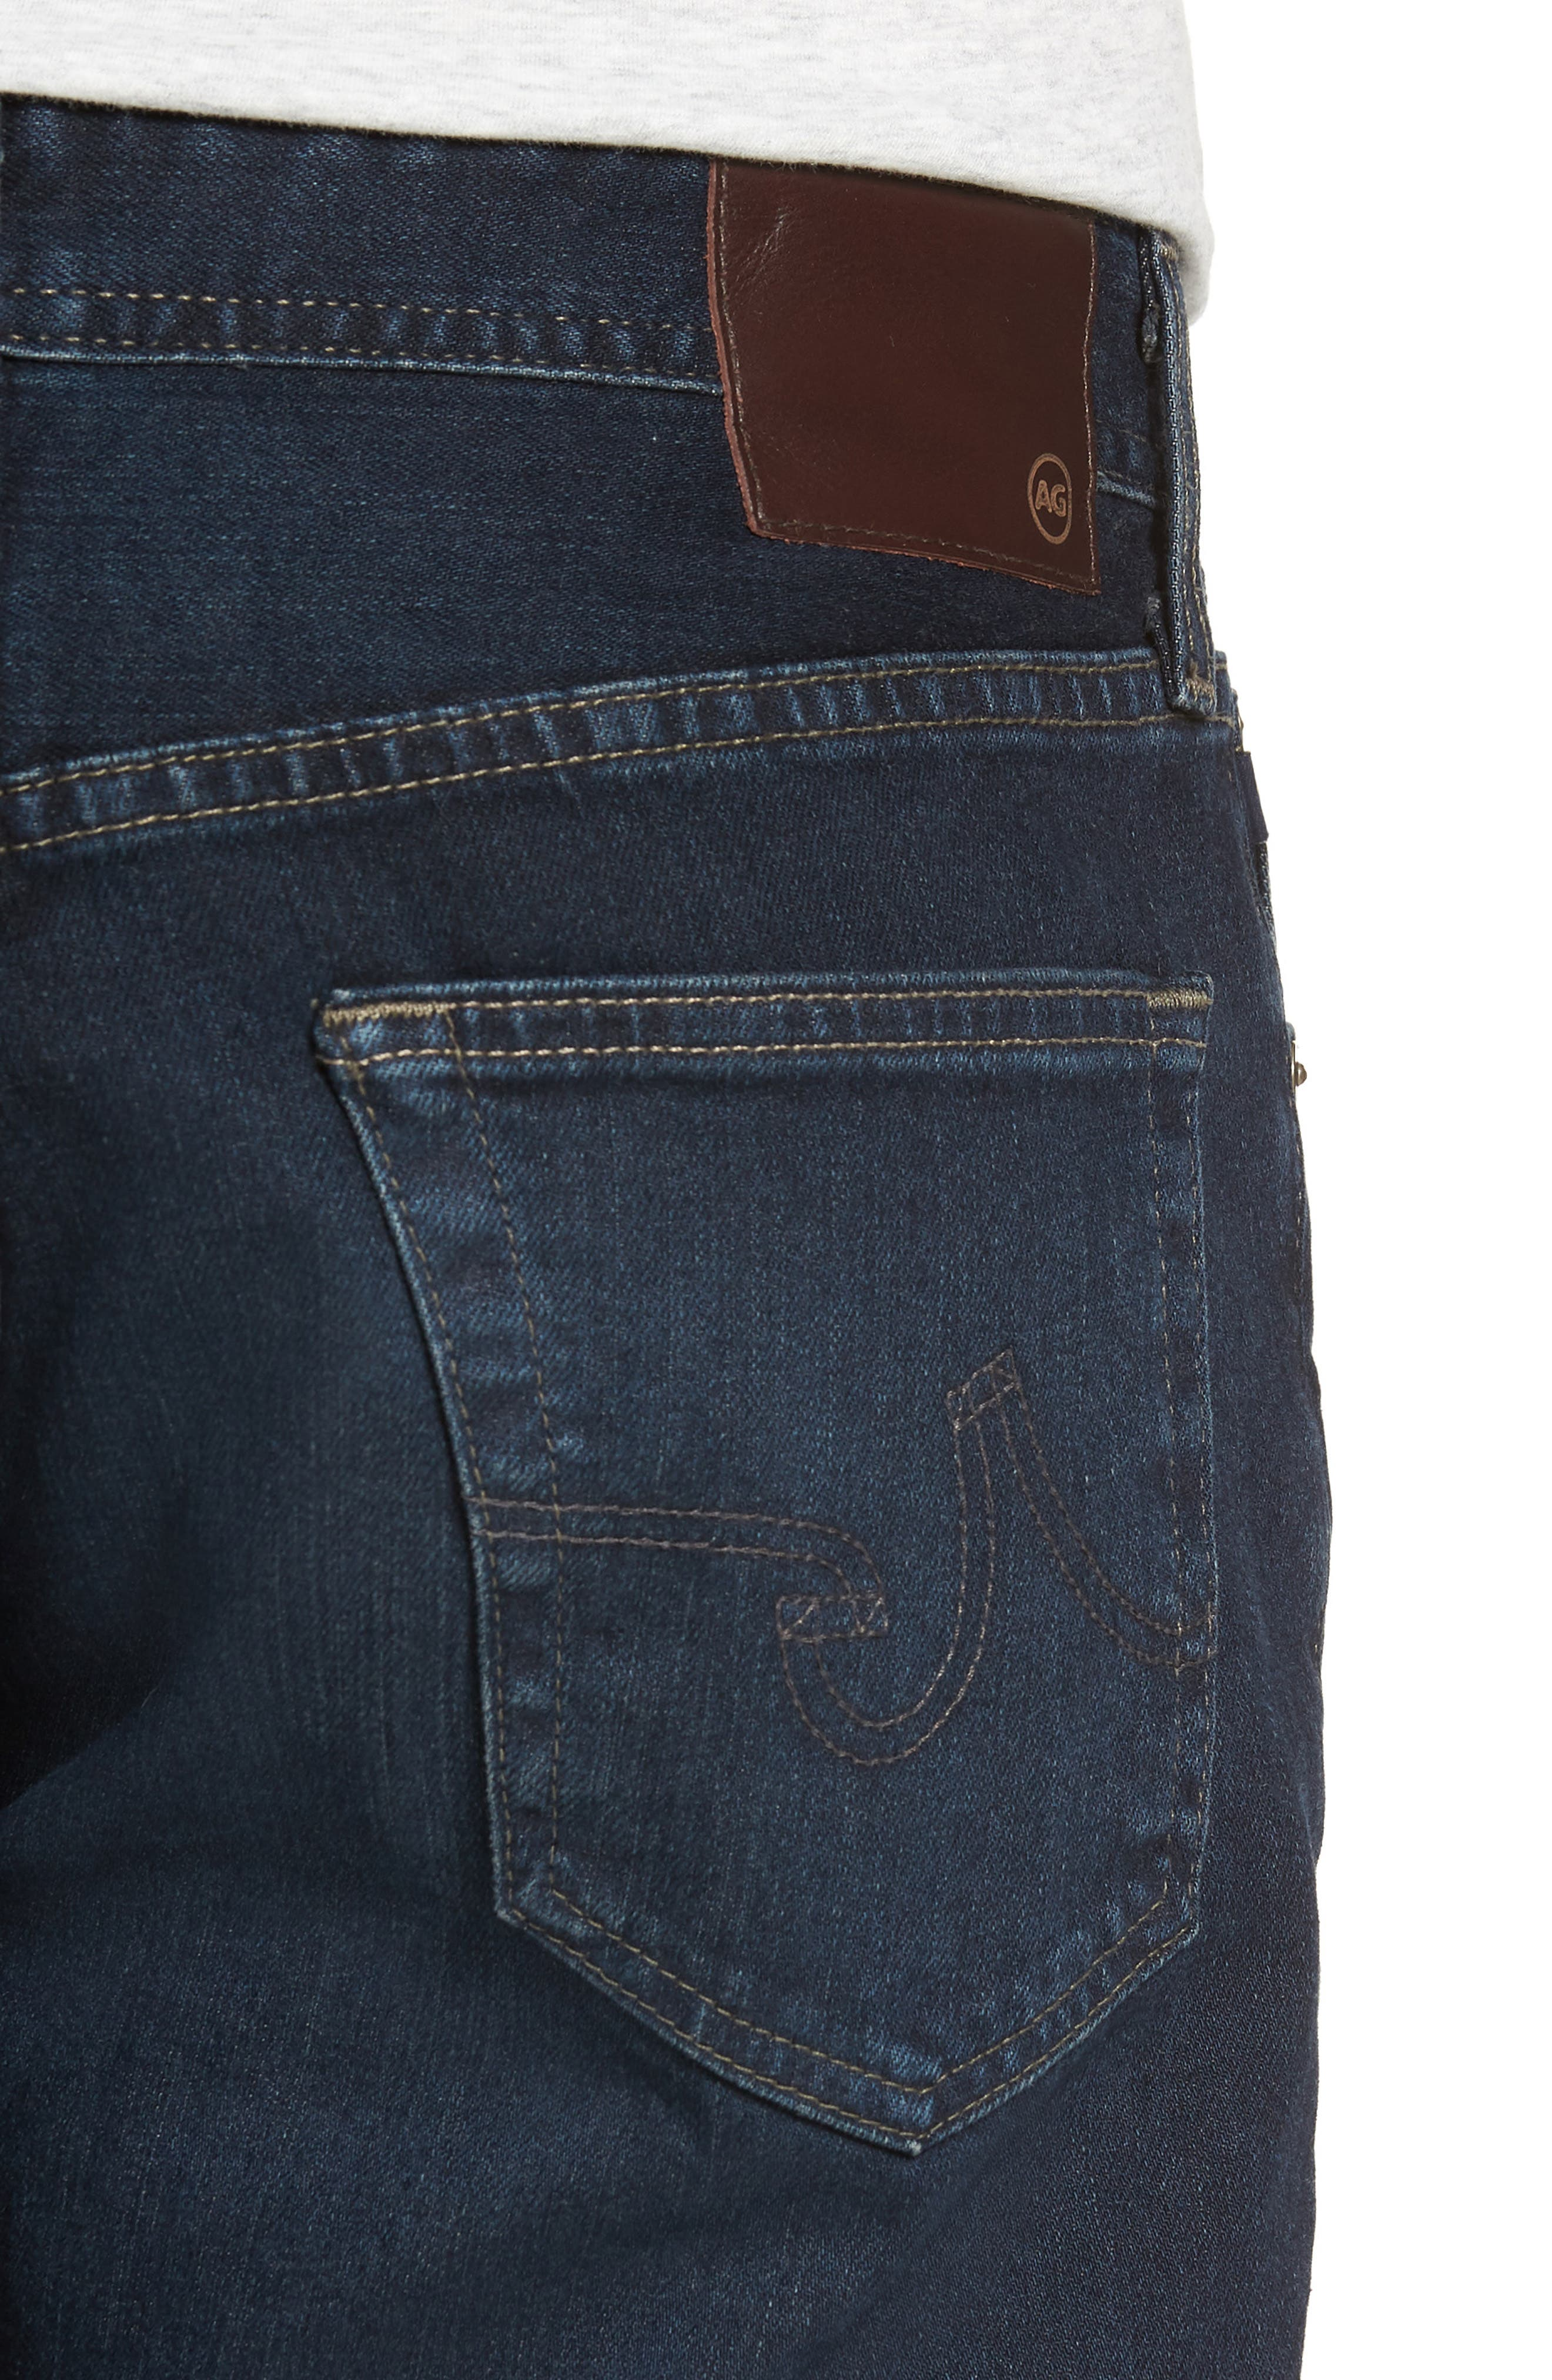 Everett Slim Straight Fit Jeans,                             Alternate thumbnail 4, color,                             SHADOW MOUNTAIN